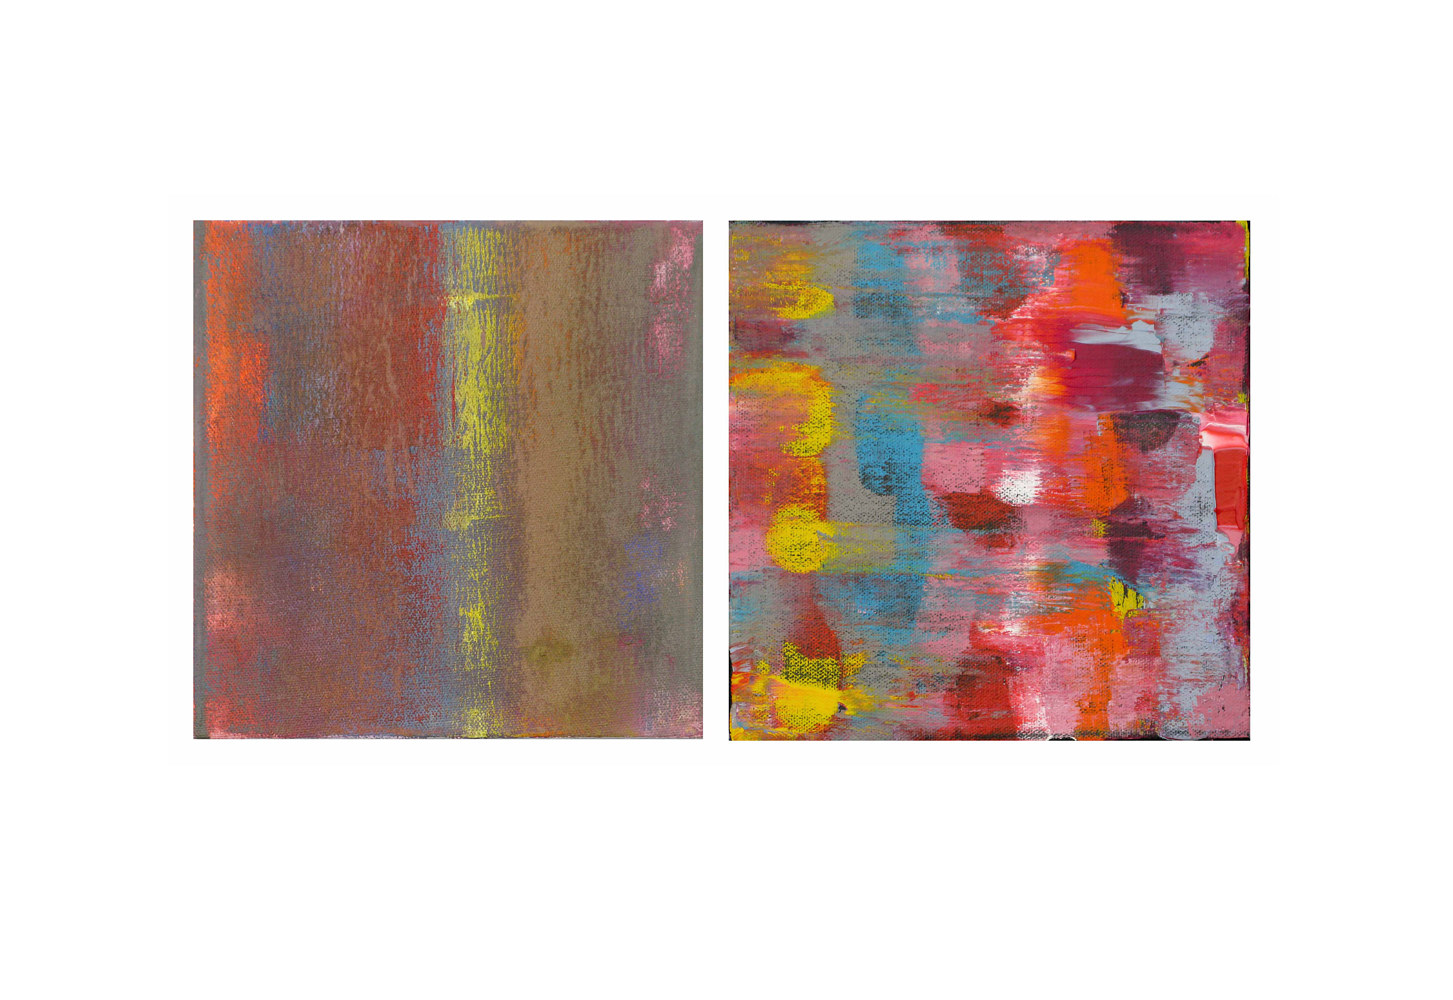 Acrylic painting Waft of Color, 8x8 inches each by Hooshang Khorasani